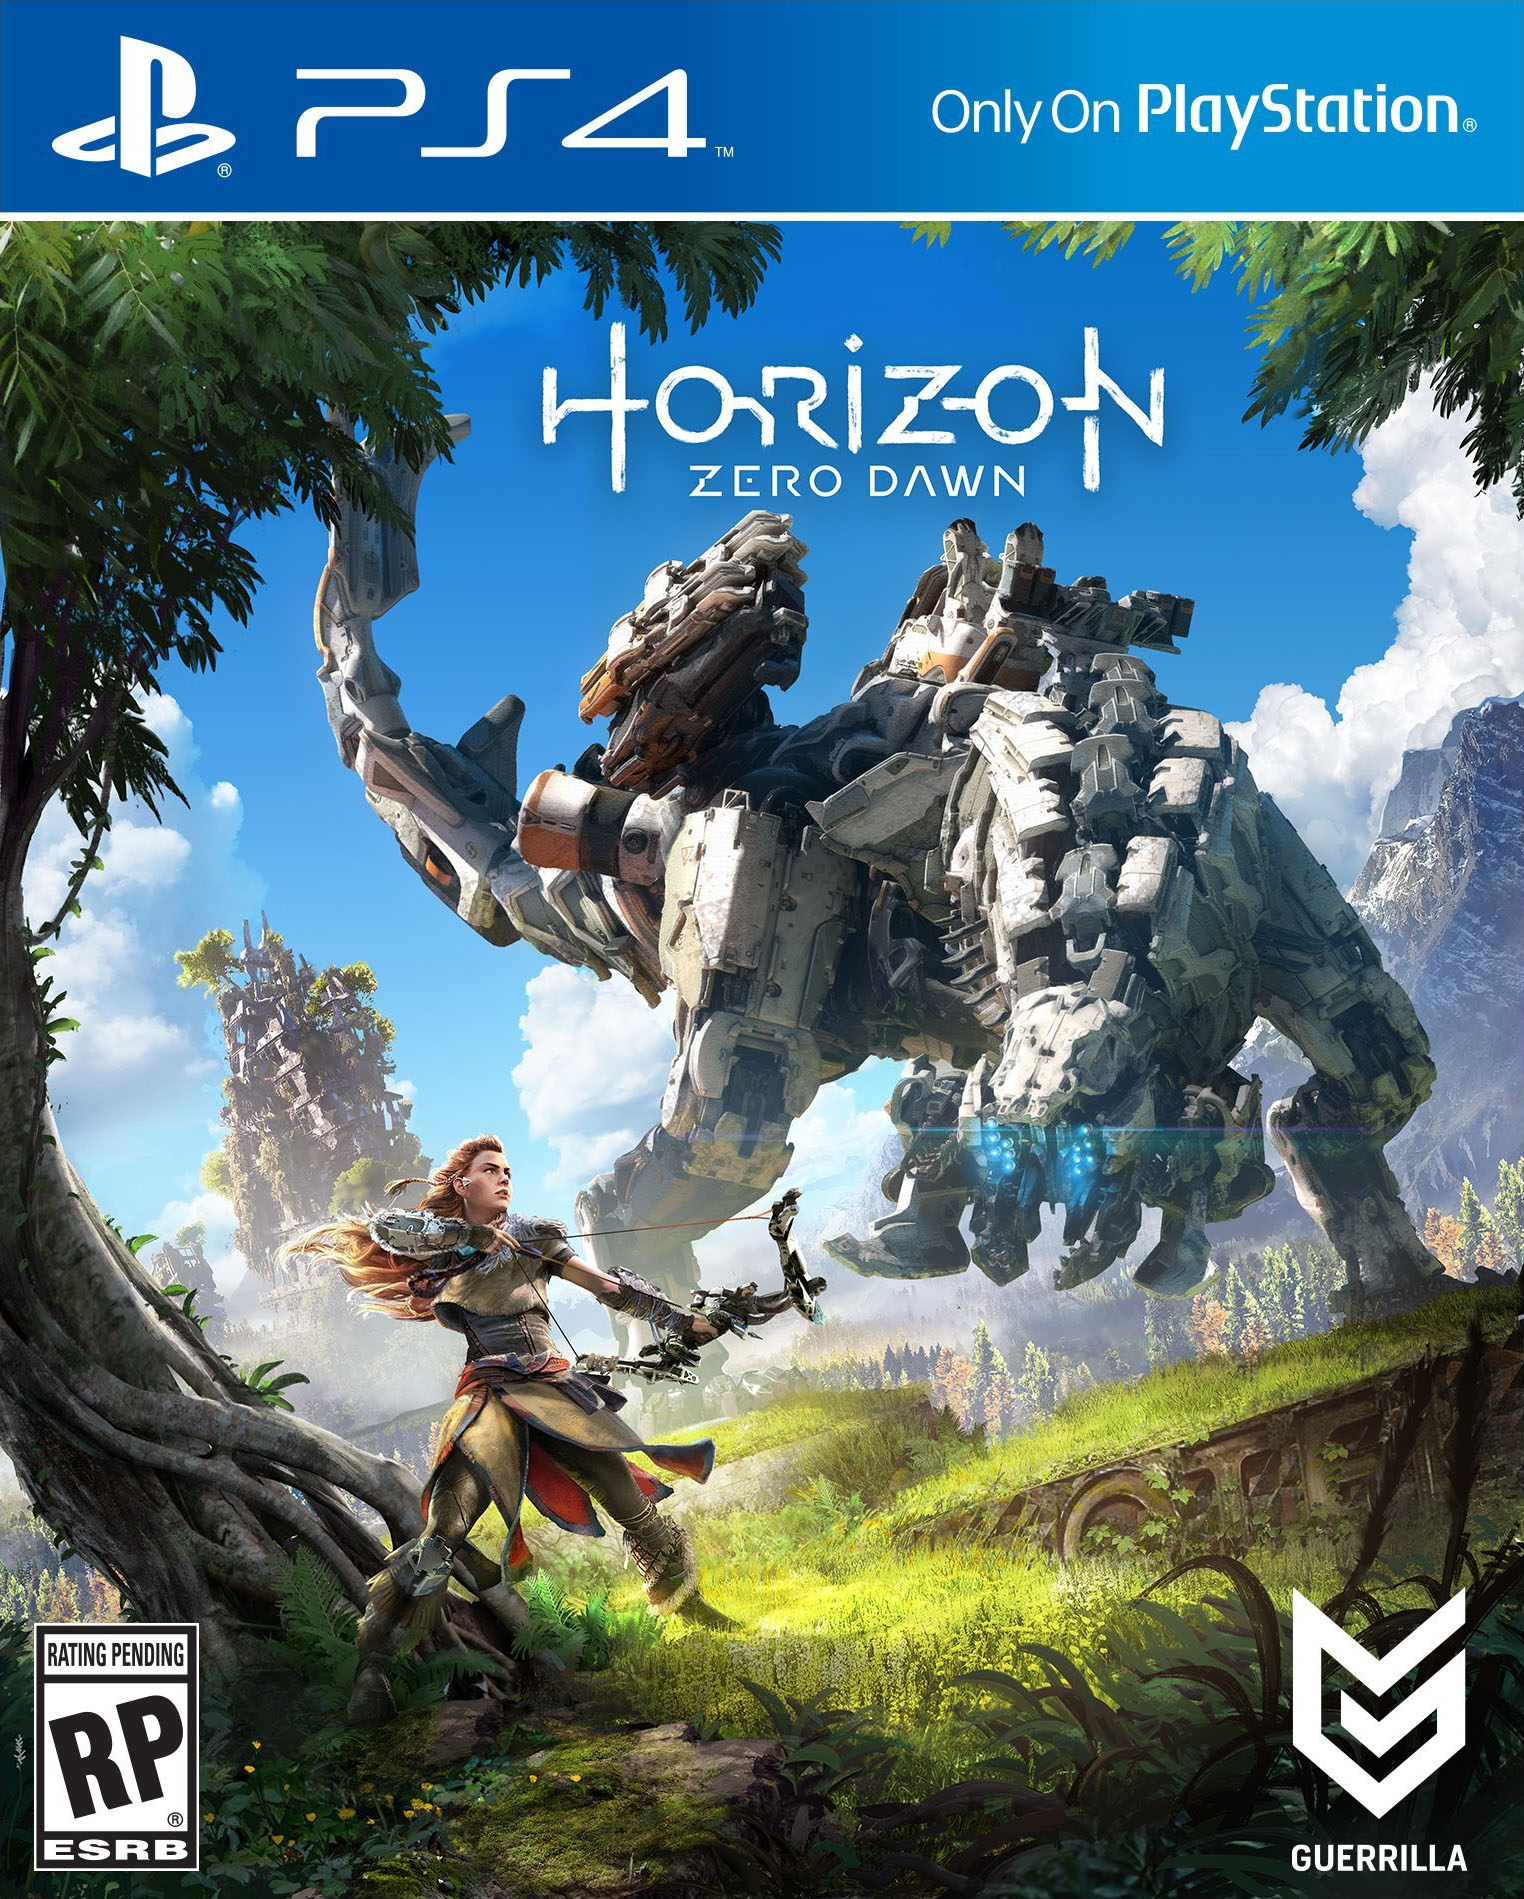 Horizon-zero-dawn-box-art.jpg